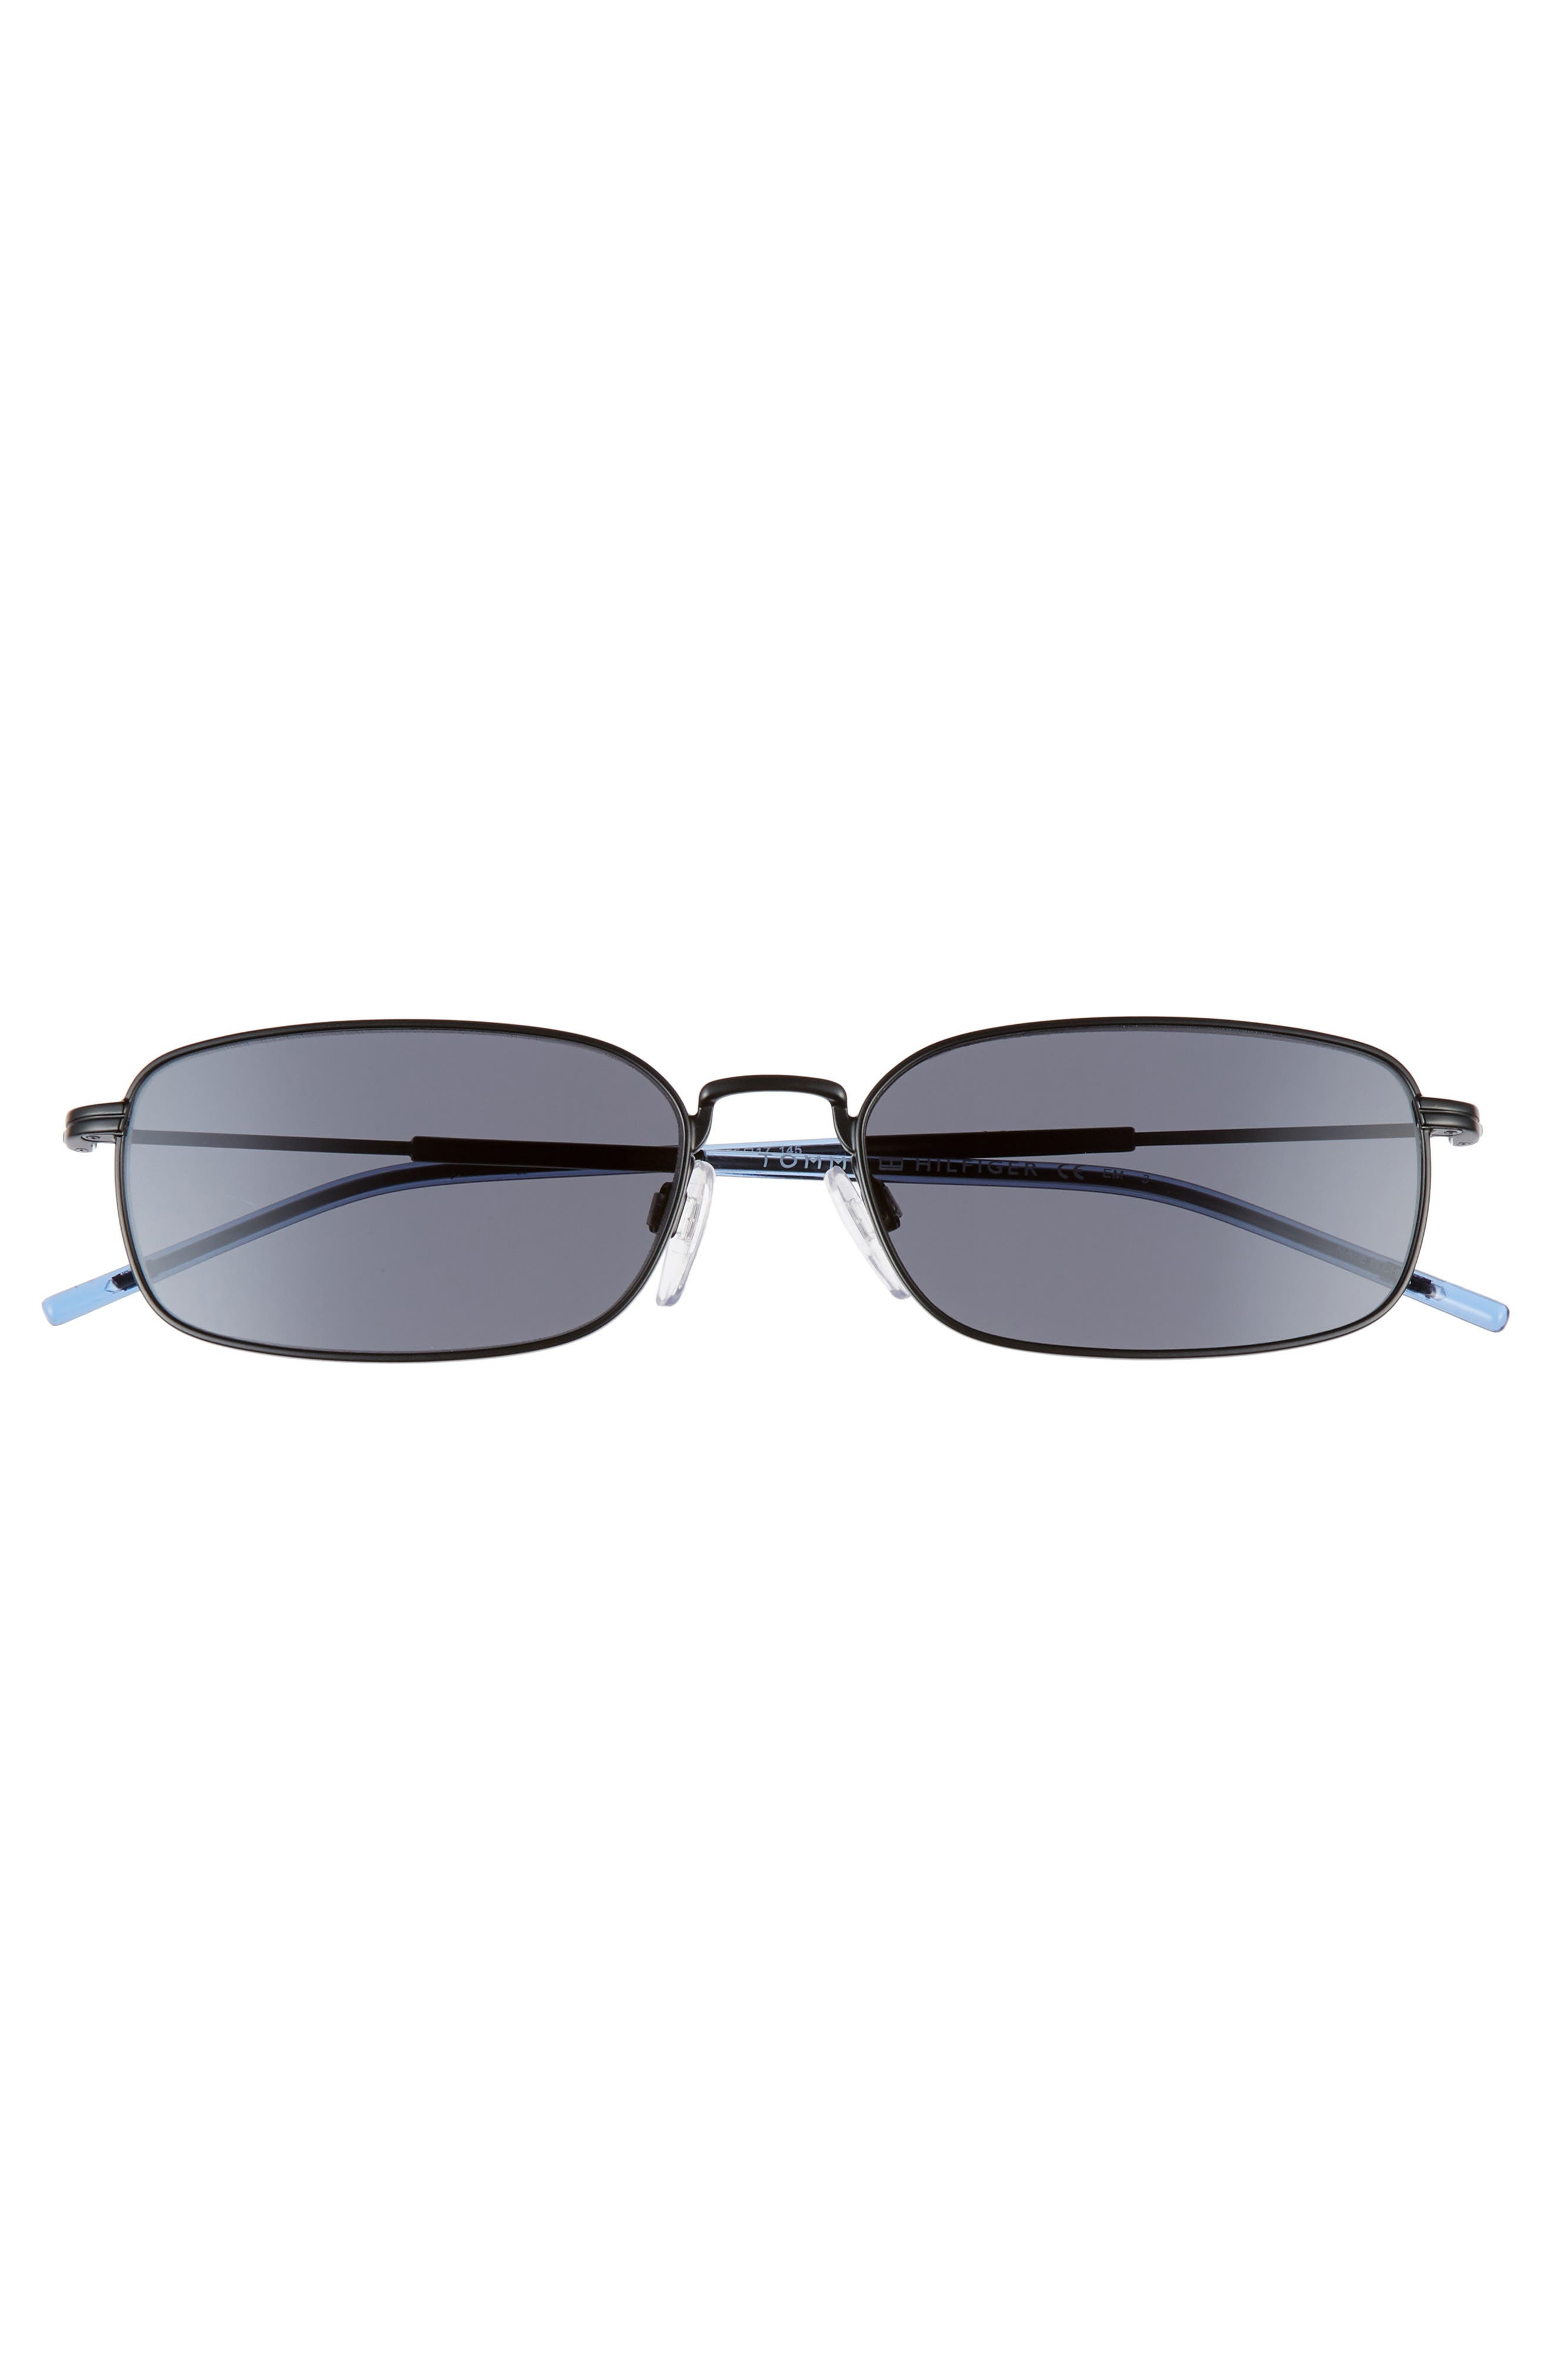 TOMMY HILFIGER, 55mm Rectangle Sunglasses, Alternate thumbnail 3, color, MATTE BLACK/ BLACK